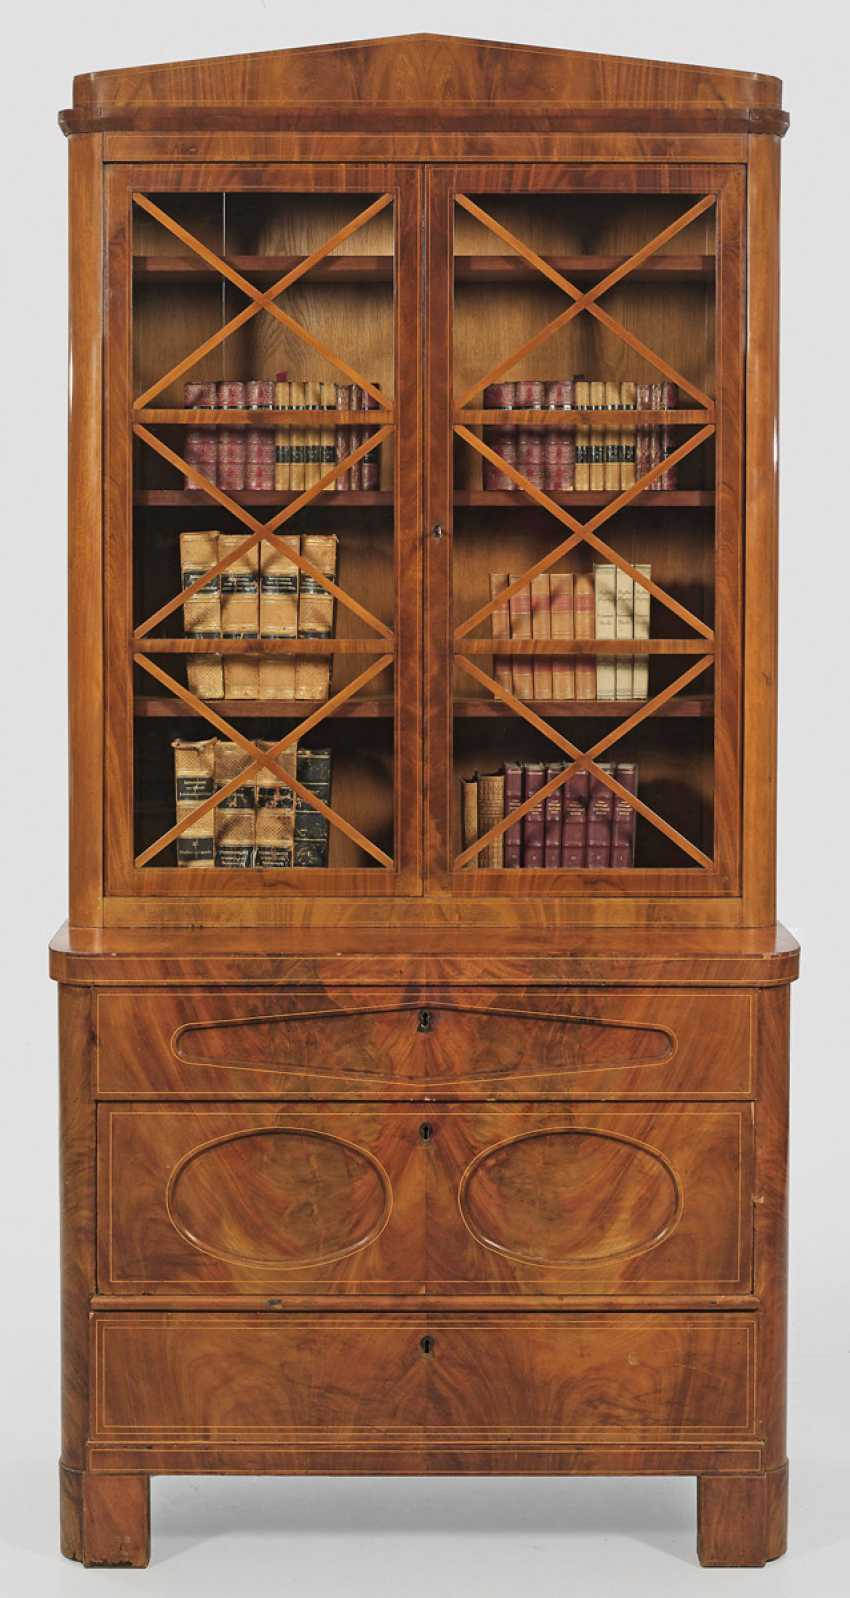 Biedermeier Display Cabinets-Top Chest Of Drawers - photo 1